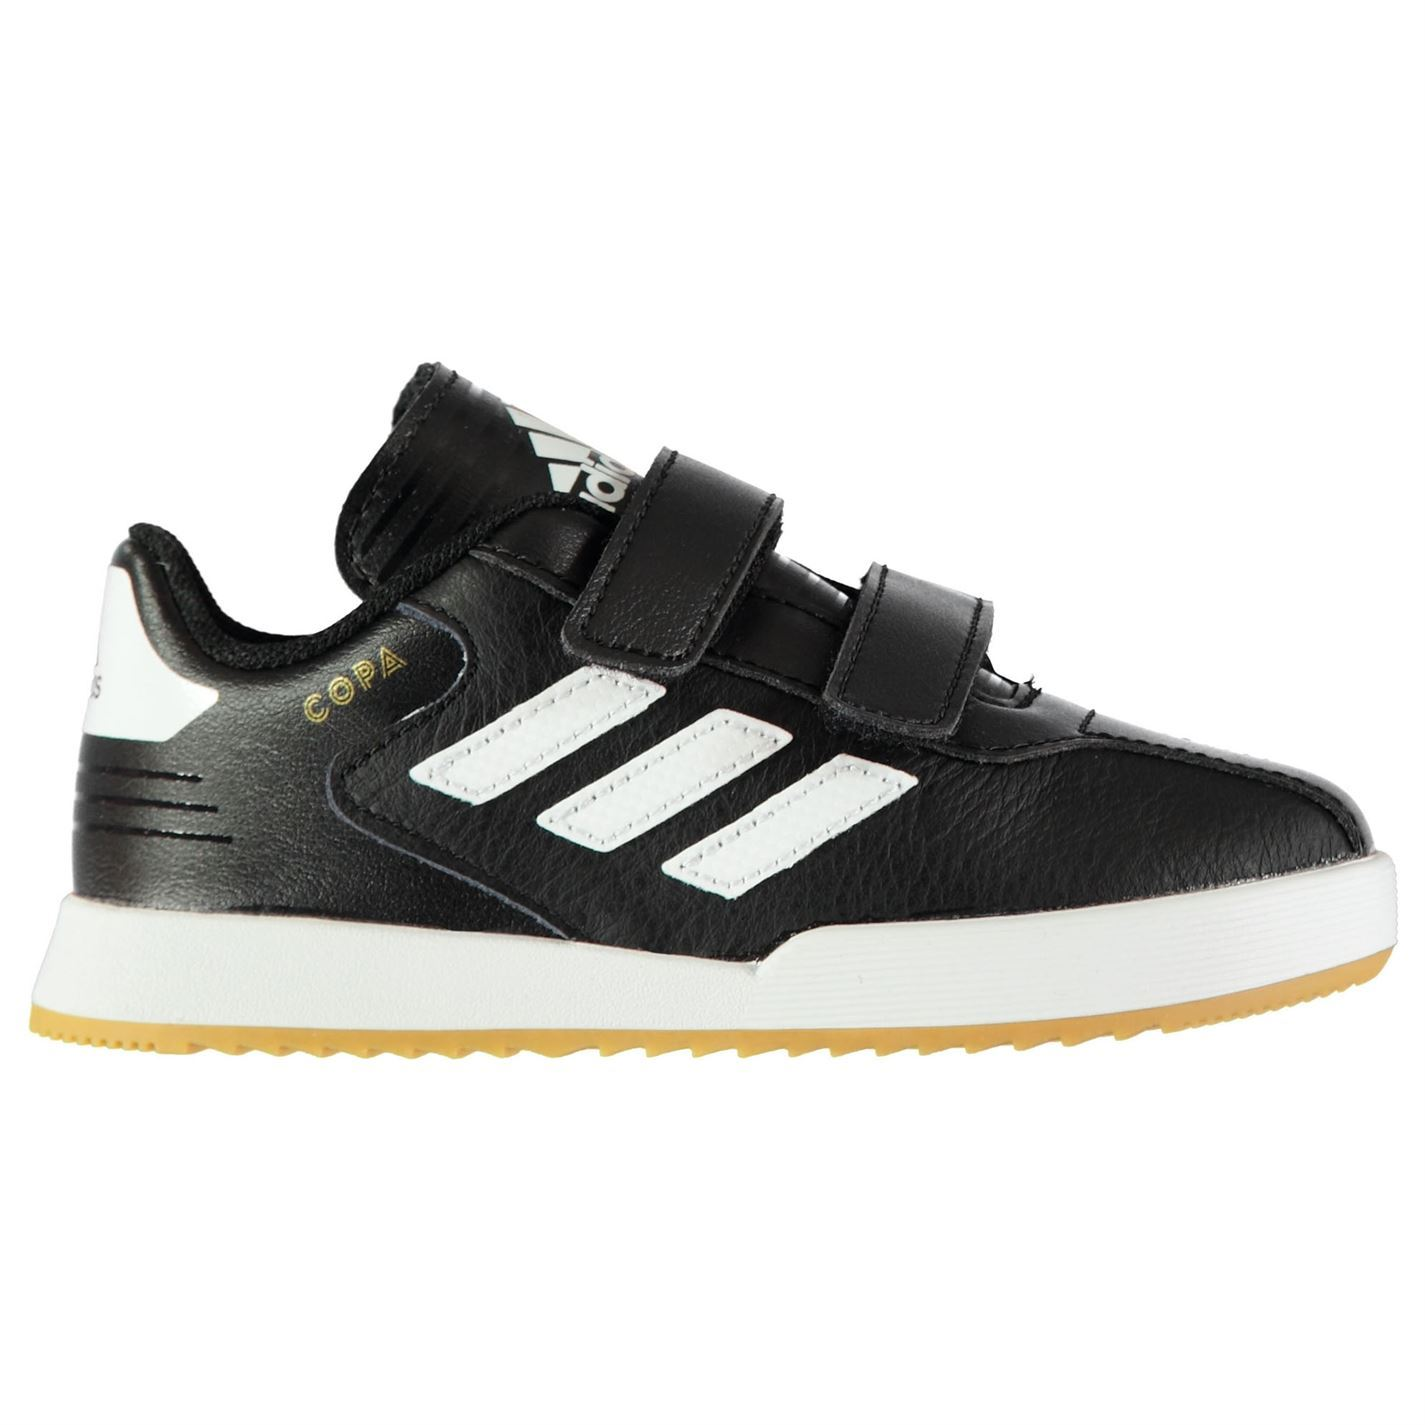 adidas Copa Super Trainers Infant Boys Black/White Shoes Footwear ...